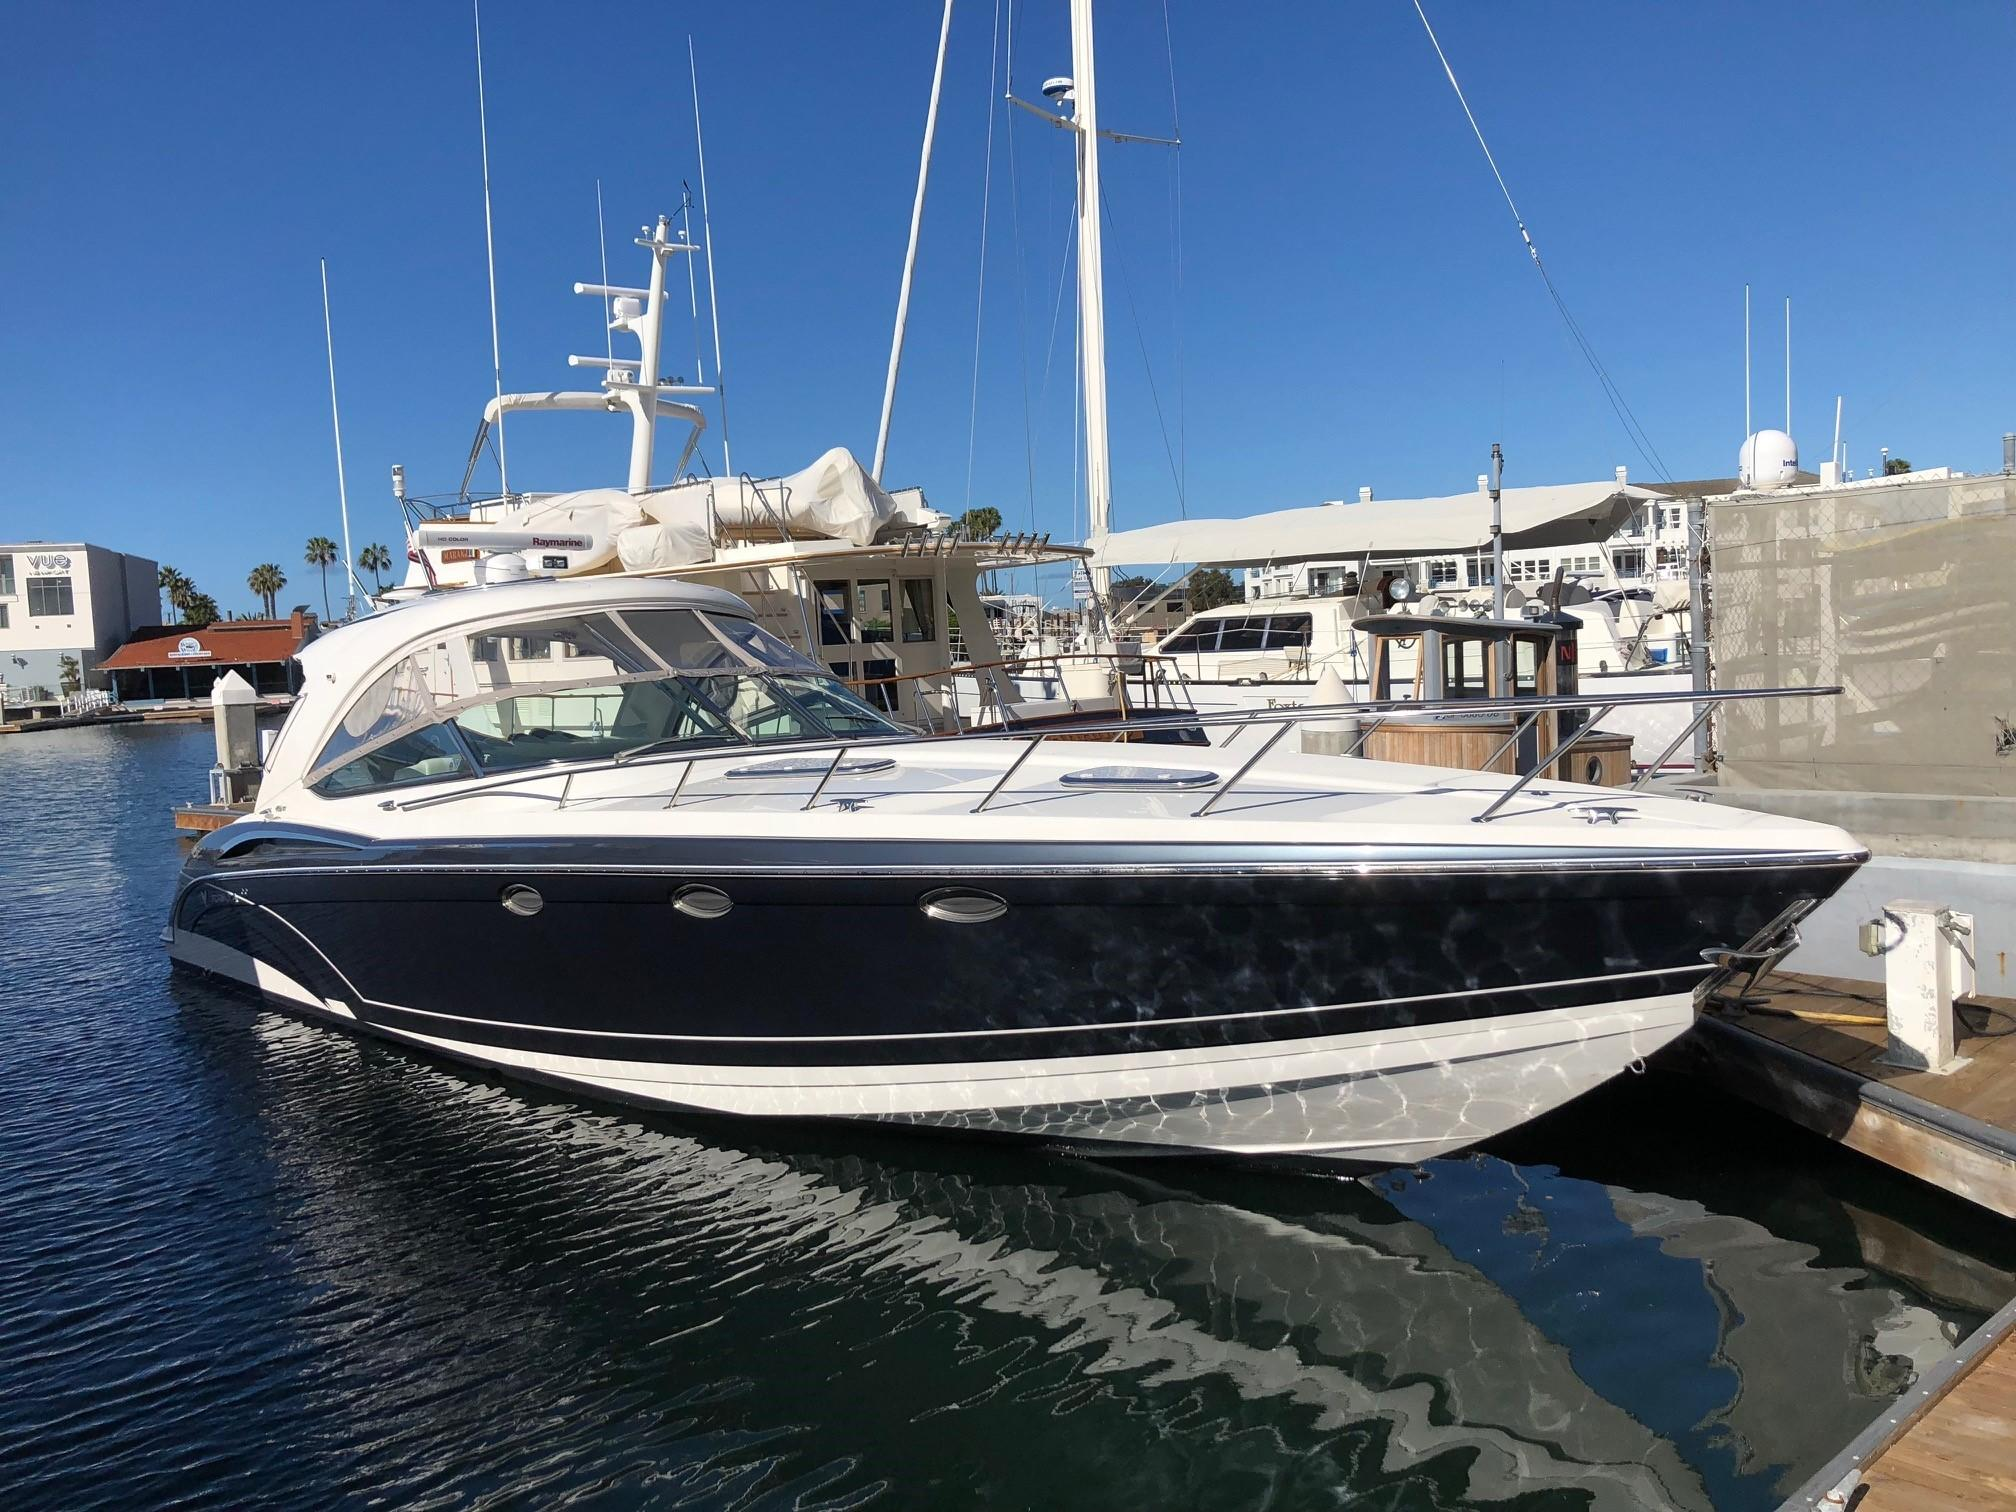 2017 Formula 400 Super Sport Yacht for Sale in Newport Beach, CA